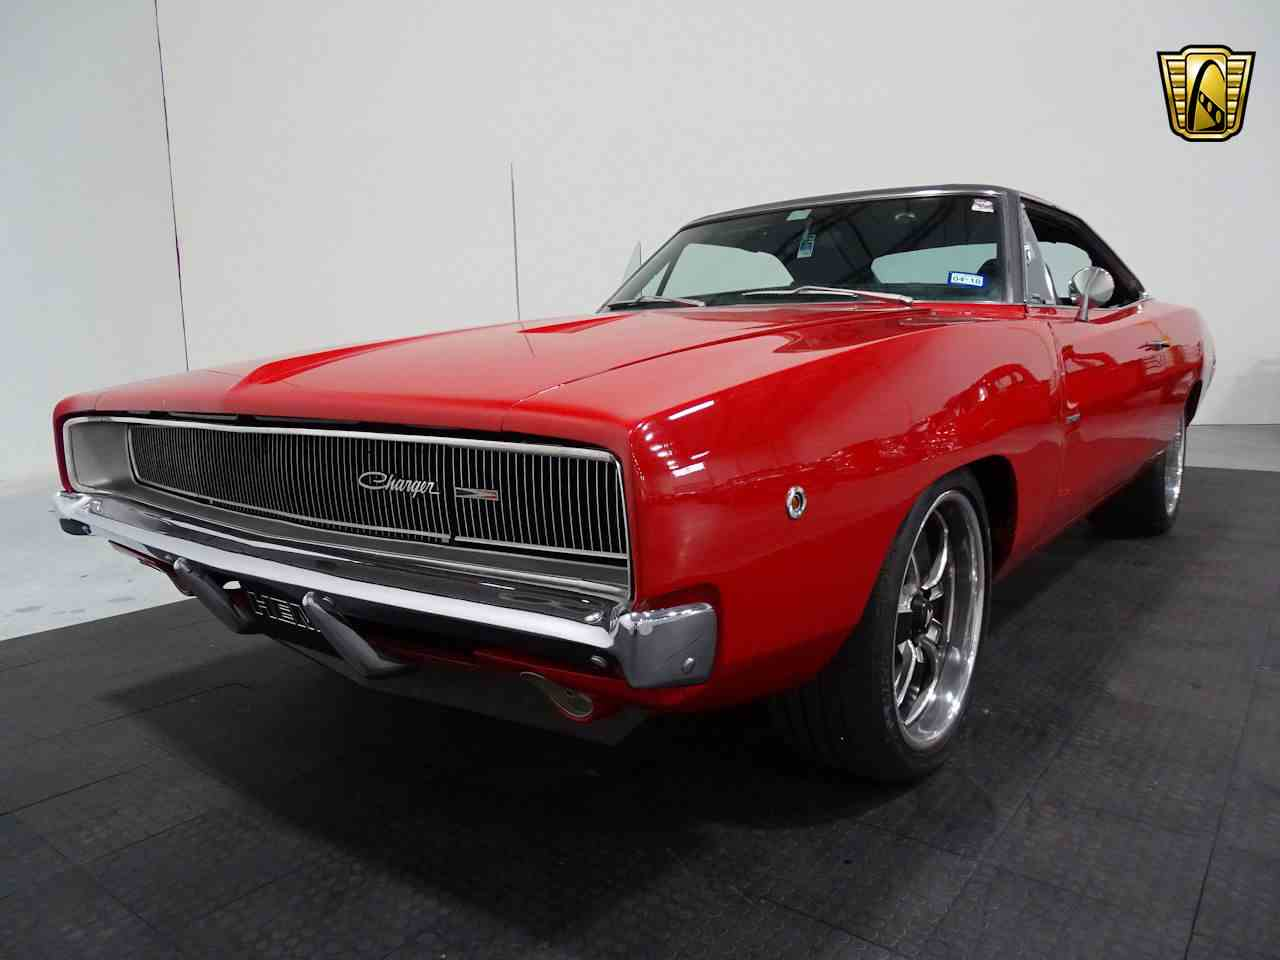 Large Picture of '68 Charger located in Houston Texas - $76,000.00 Offered by Gateway Classic Cars - Houston - LUKM